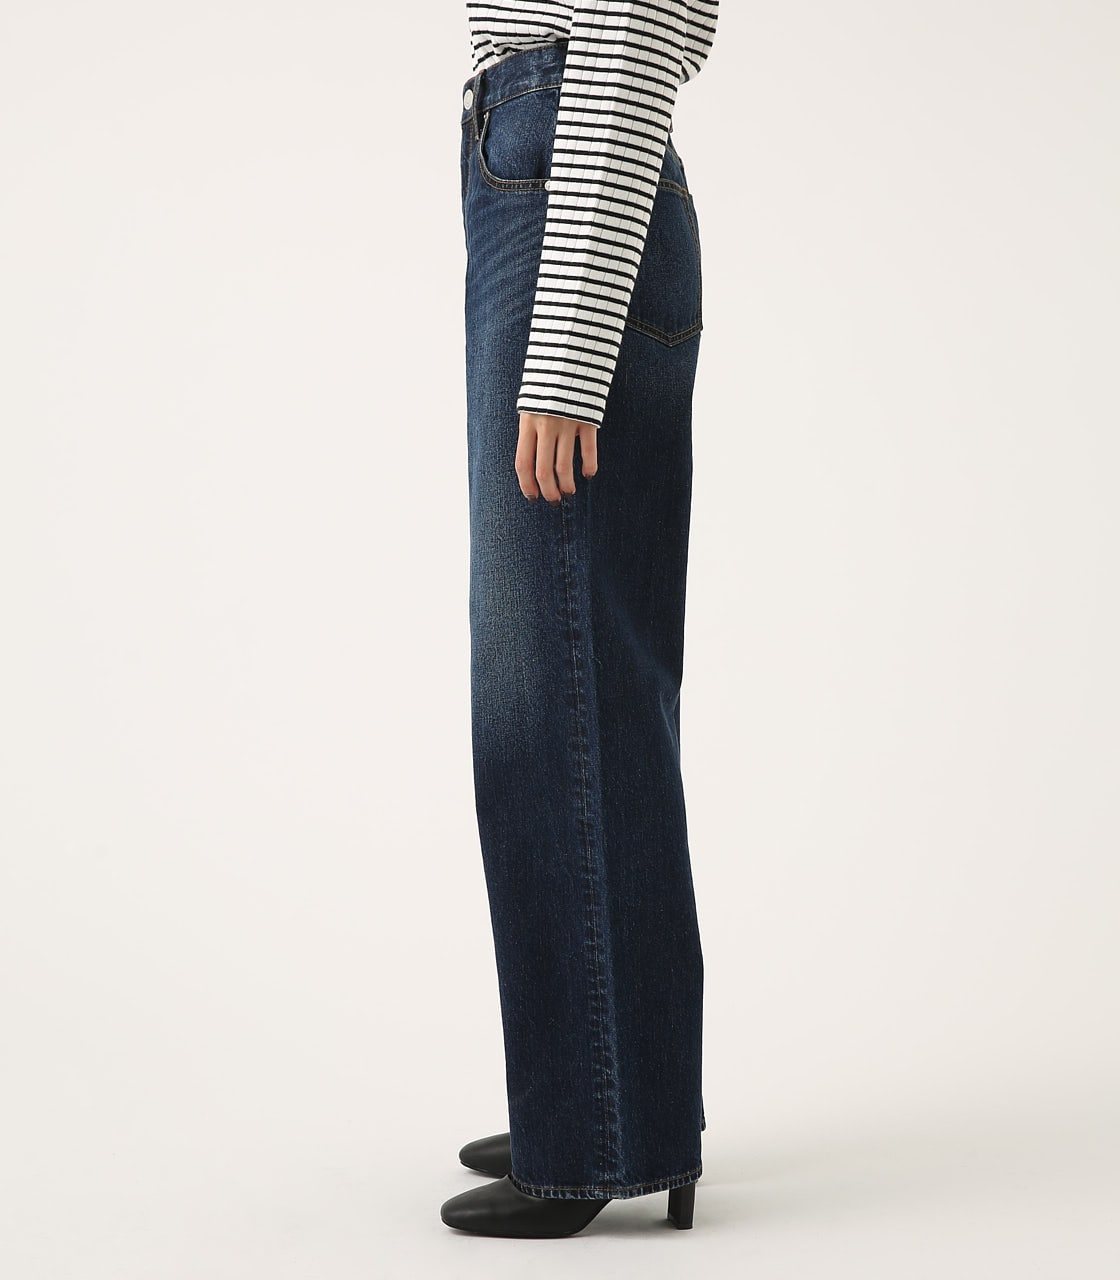 HIGH WAIST DENIM WIDE 詳細画像 D/BLU 6